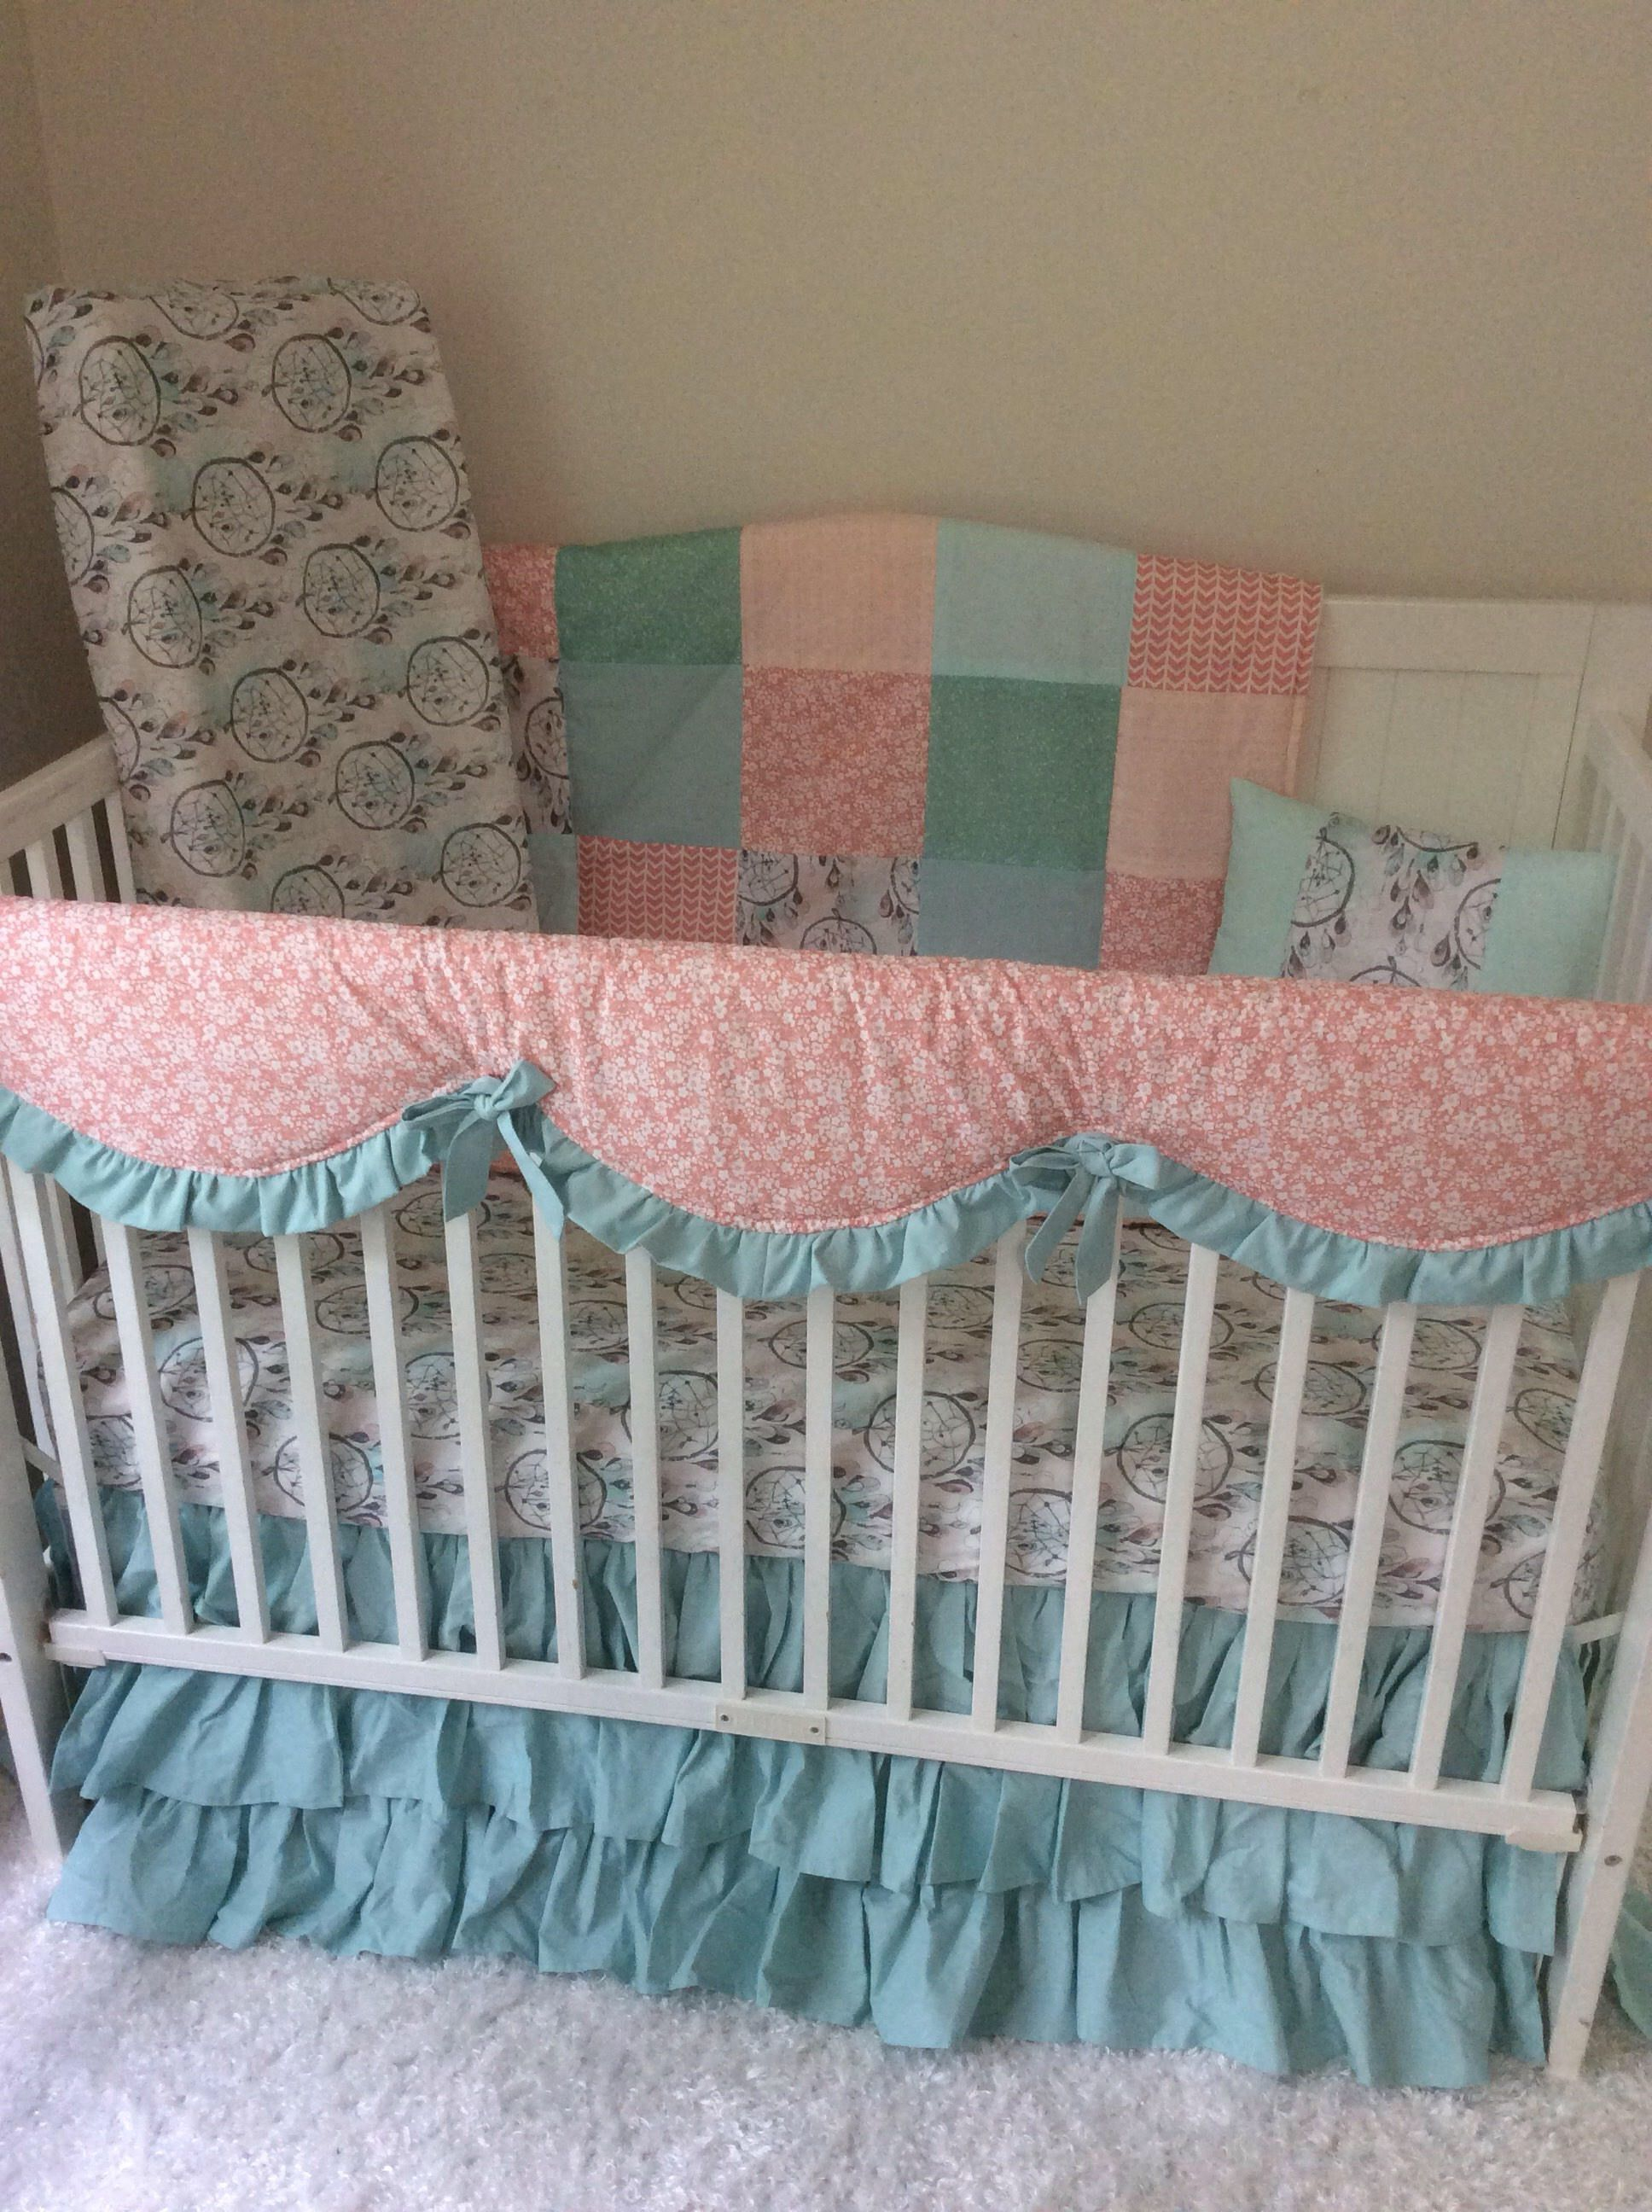 Dream Catcher Crib Bedding Inspiration A Personal Favorite From My Etsy Shop Httpswwwetsylisting Decorating Design